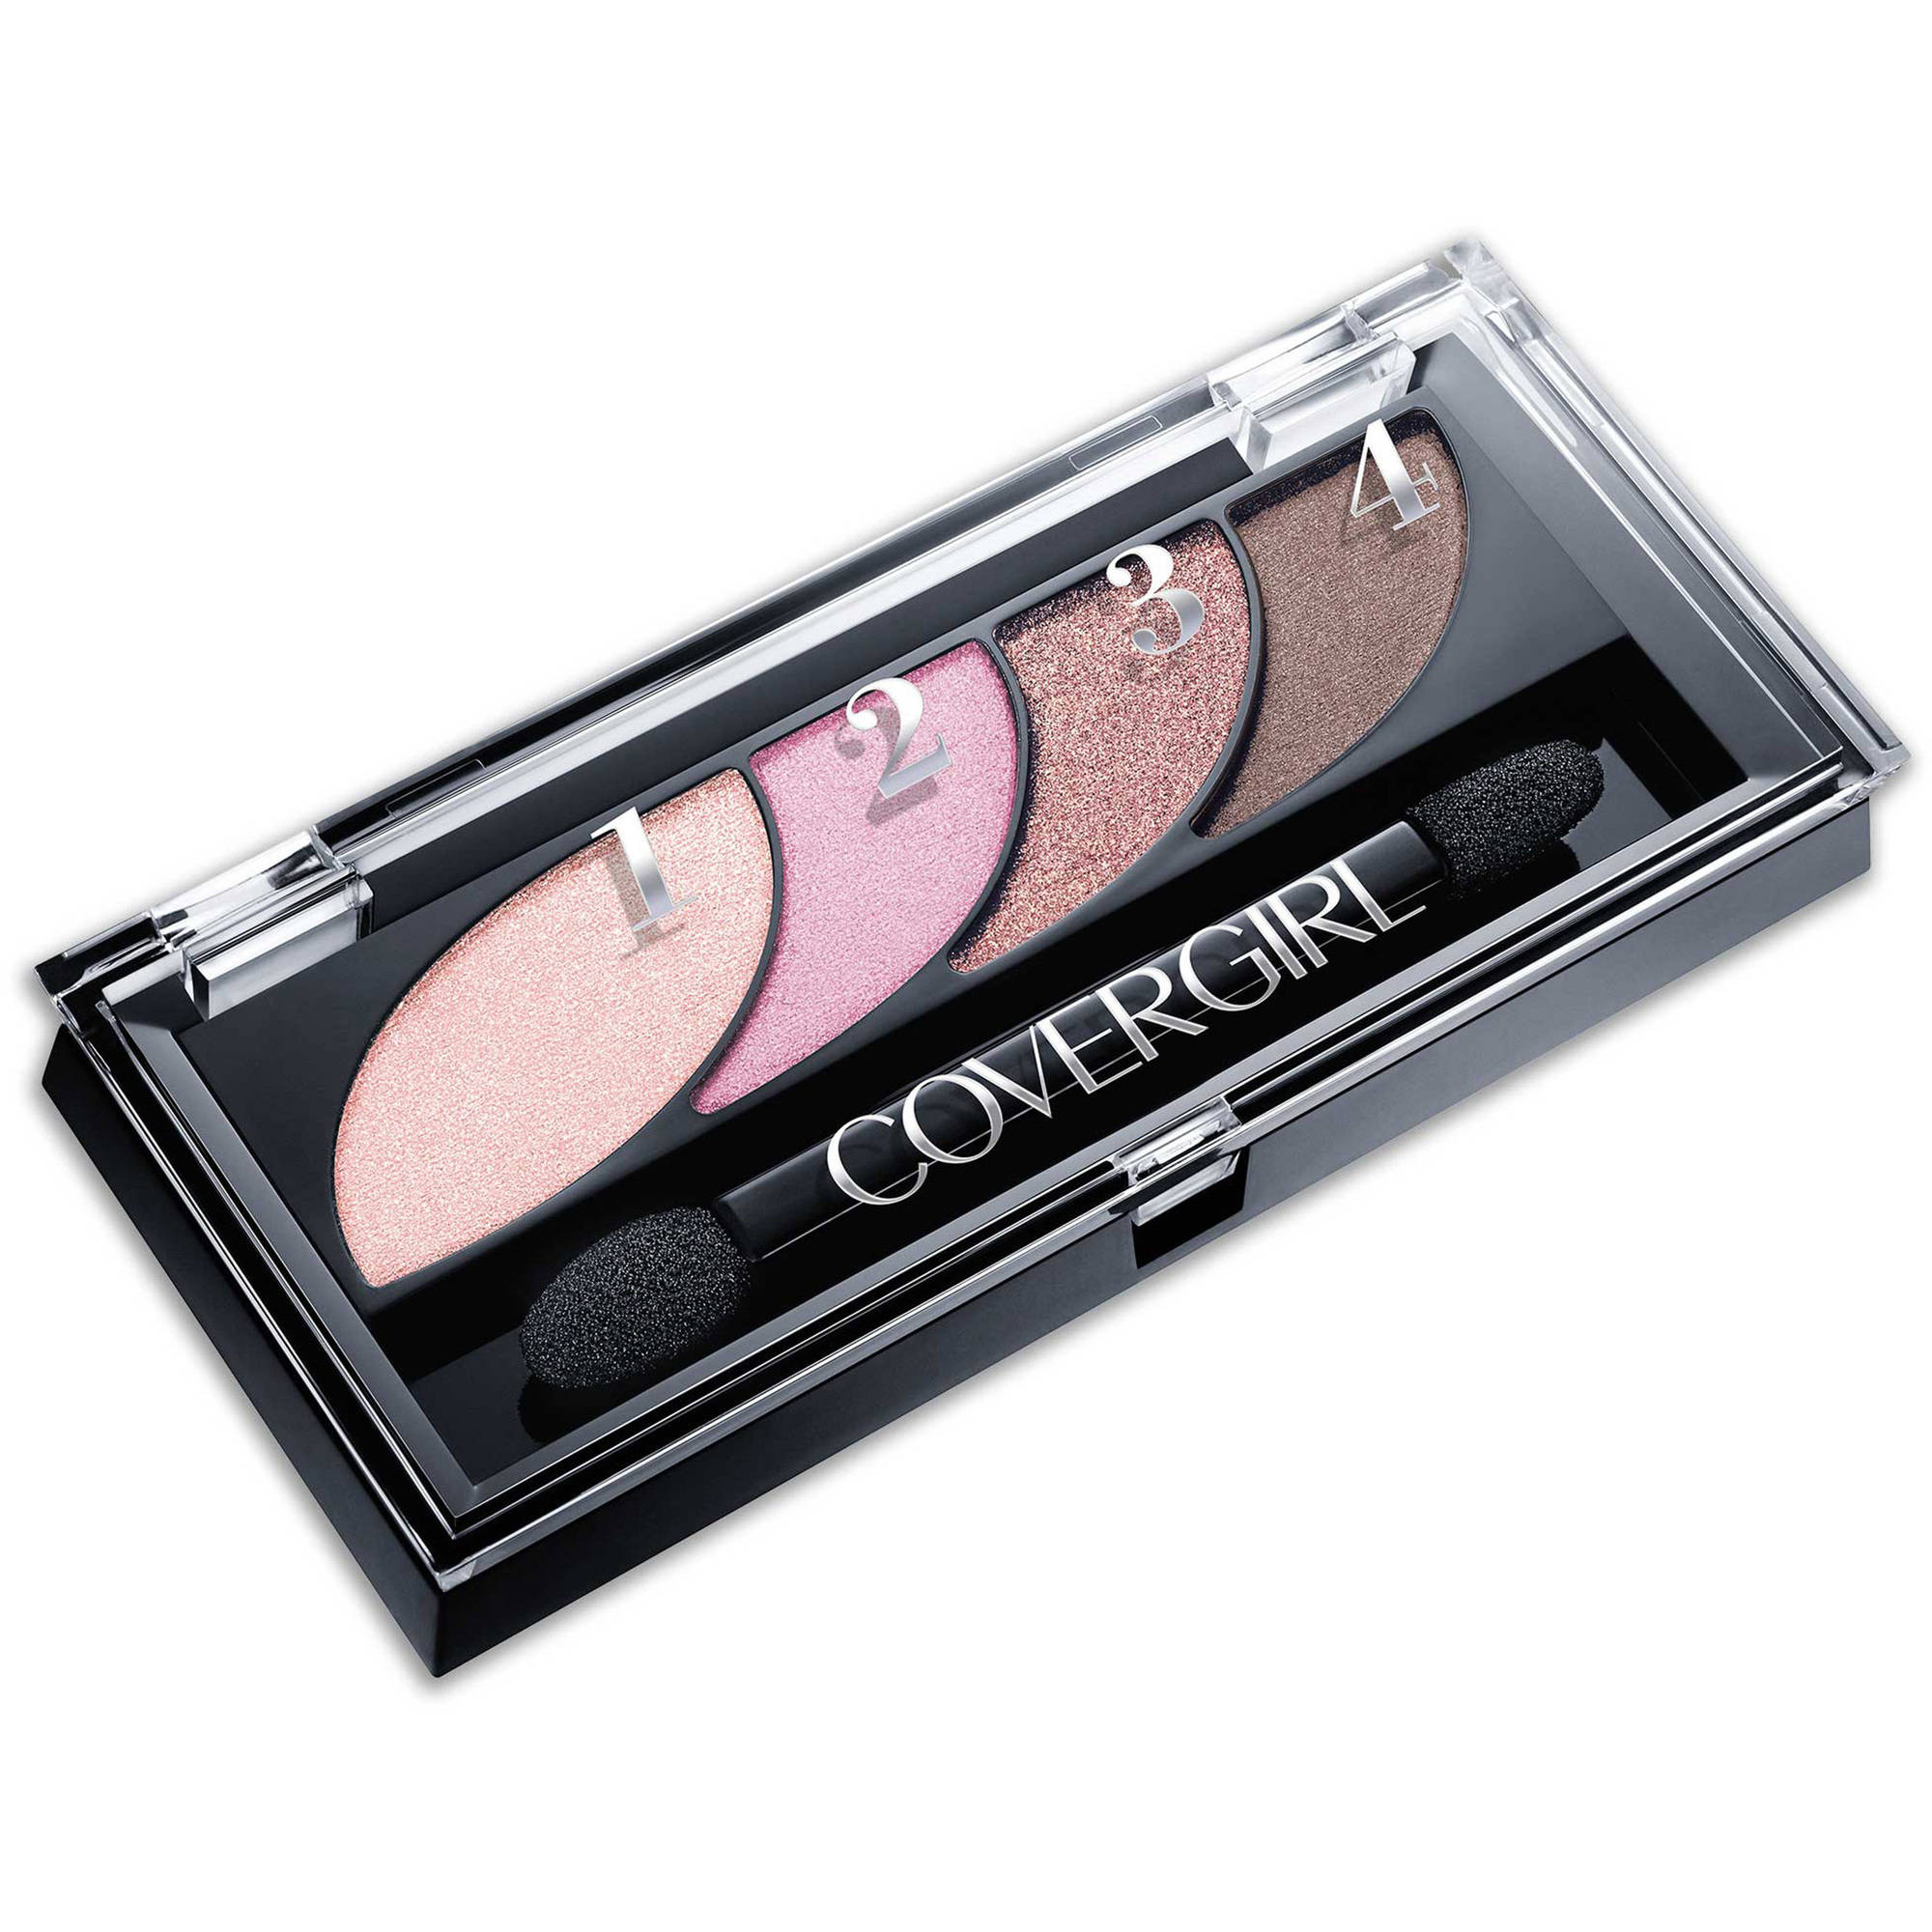 COVERGIRL Eye Shadow Quads, Blooming Blushes, 0.06 oz